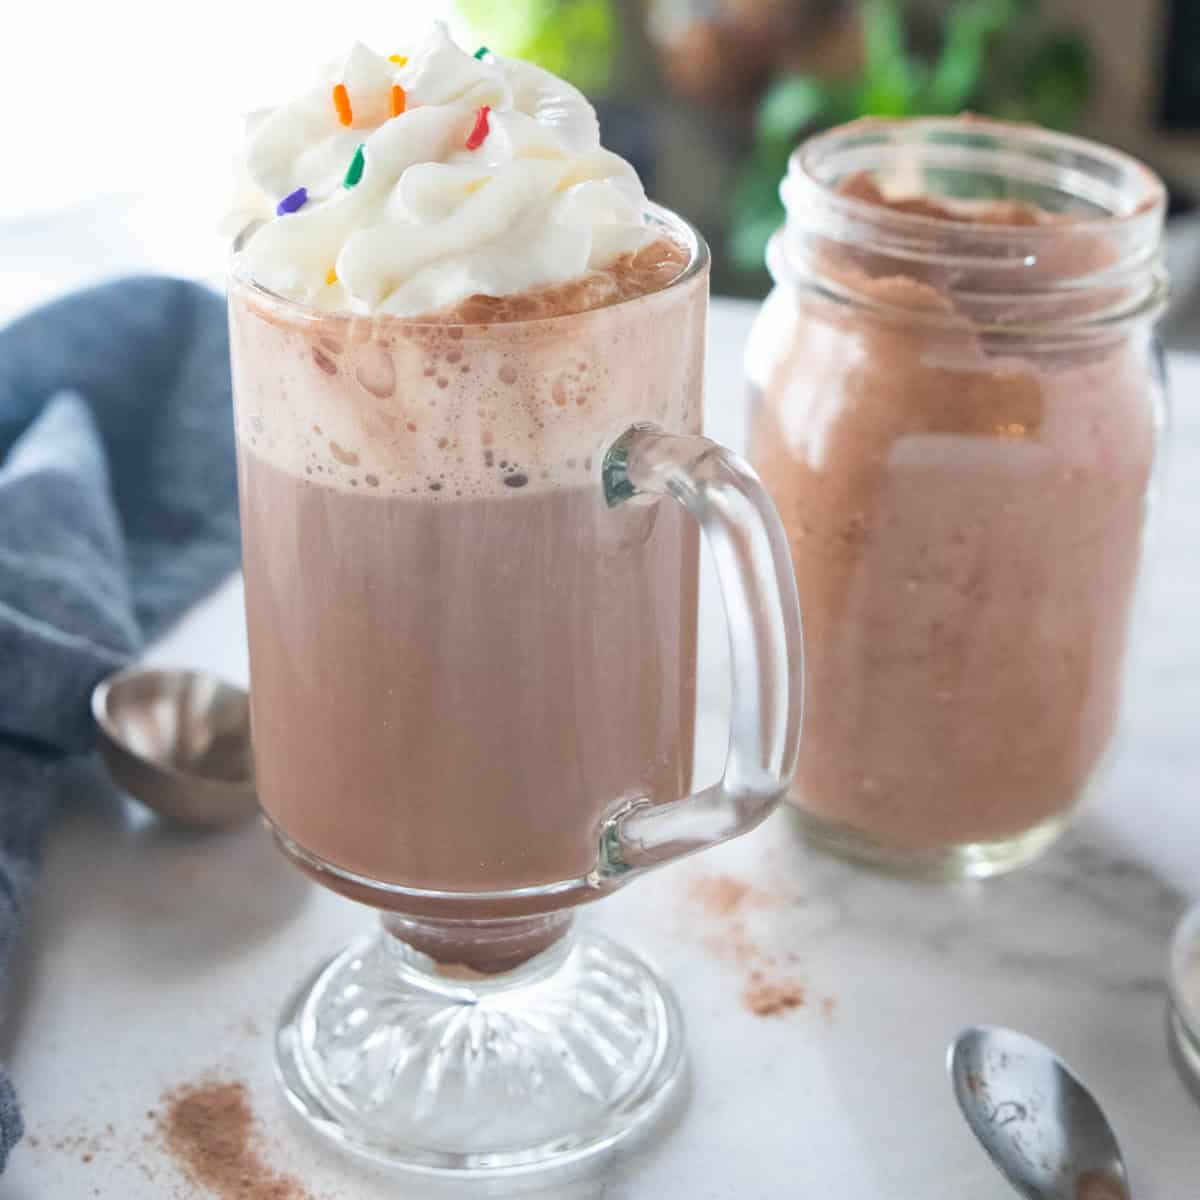 A glass mug filled with hot chocolate and topped with whipped cream sits on a countertop with a mason jar filled with hot chocolate mix behind the mug.